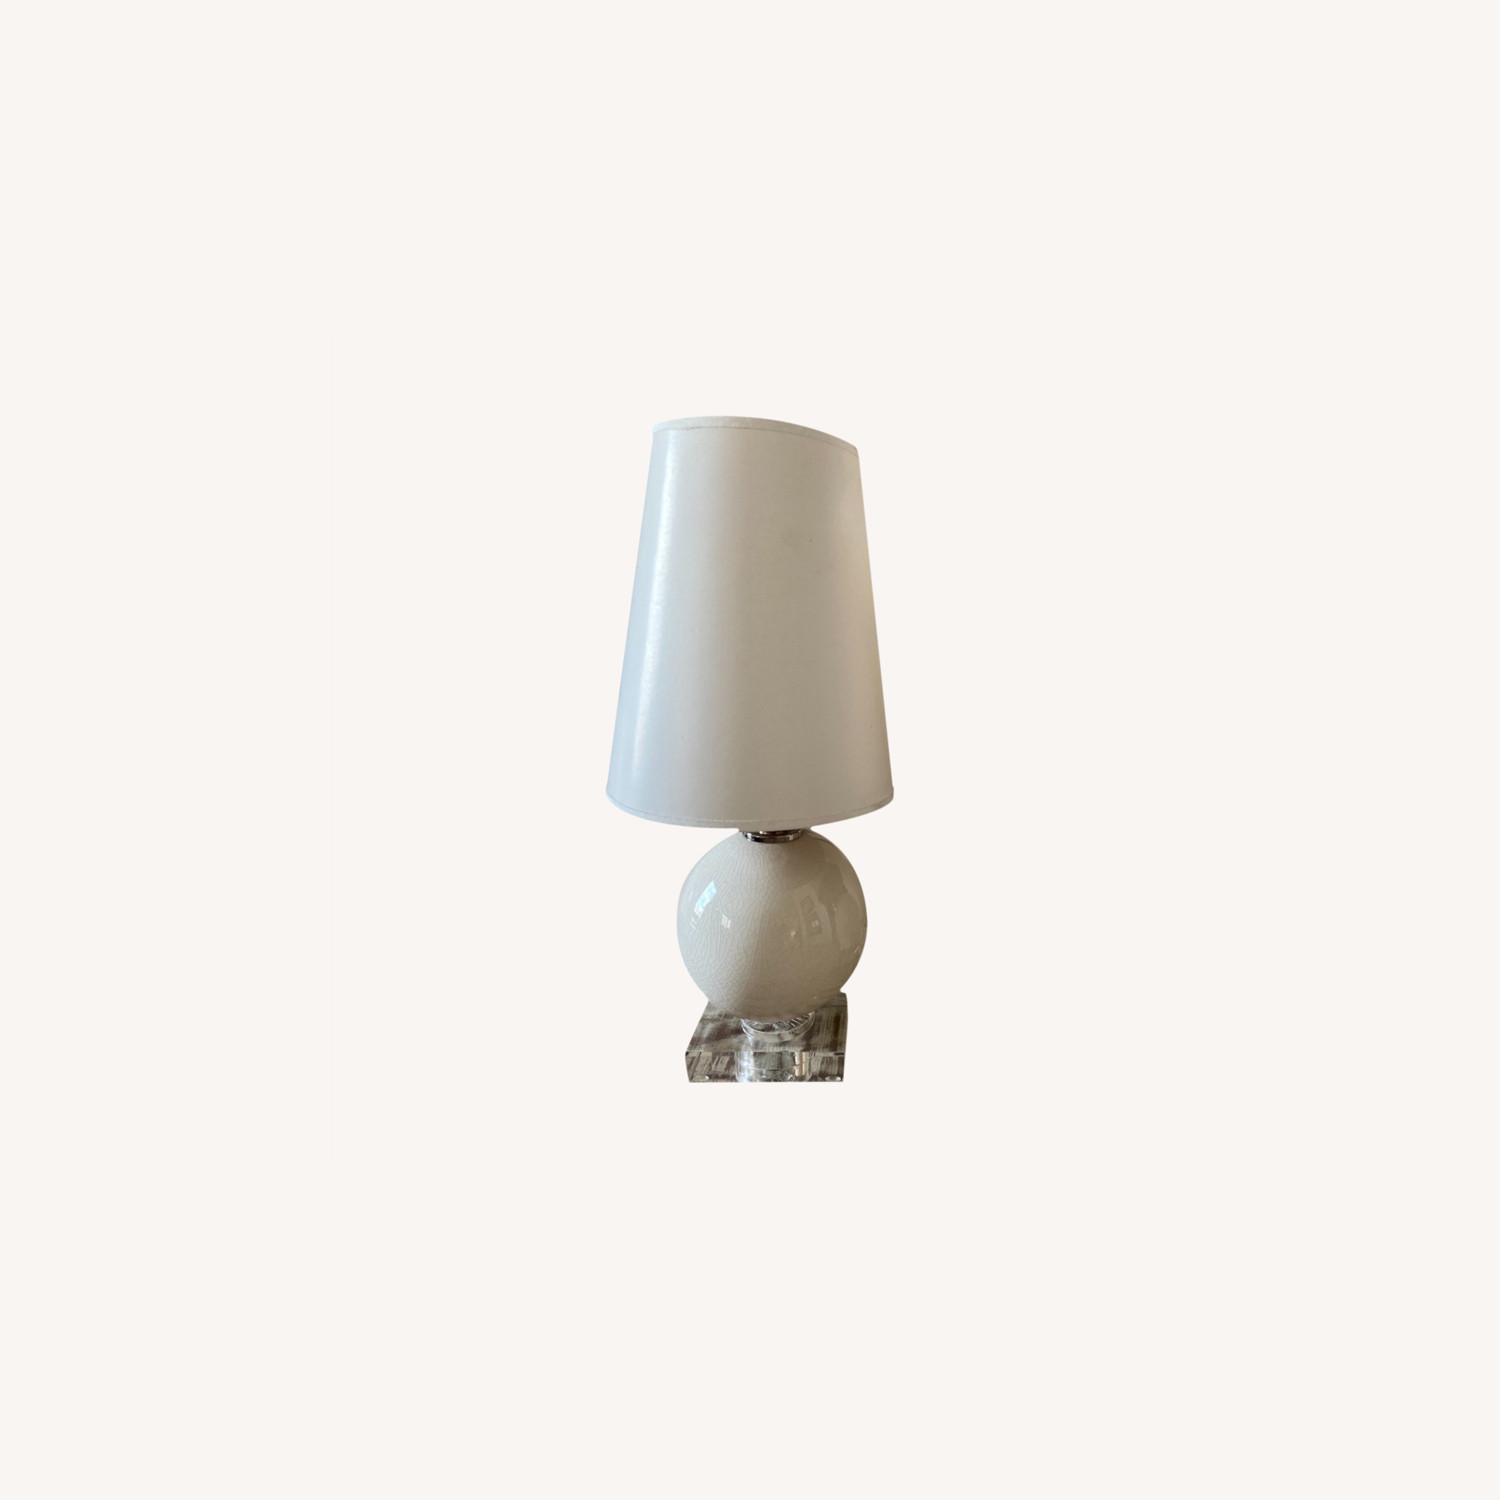 Crackled Glass Table Lamps w Lucite Base - image-6